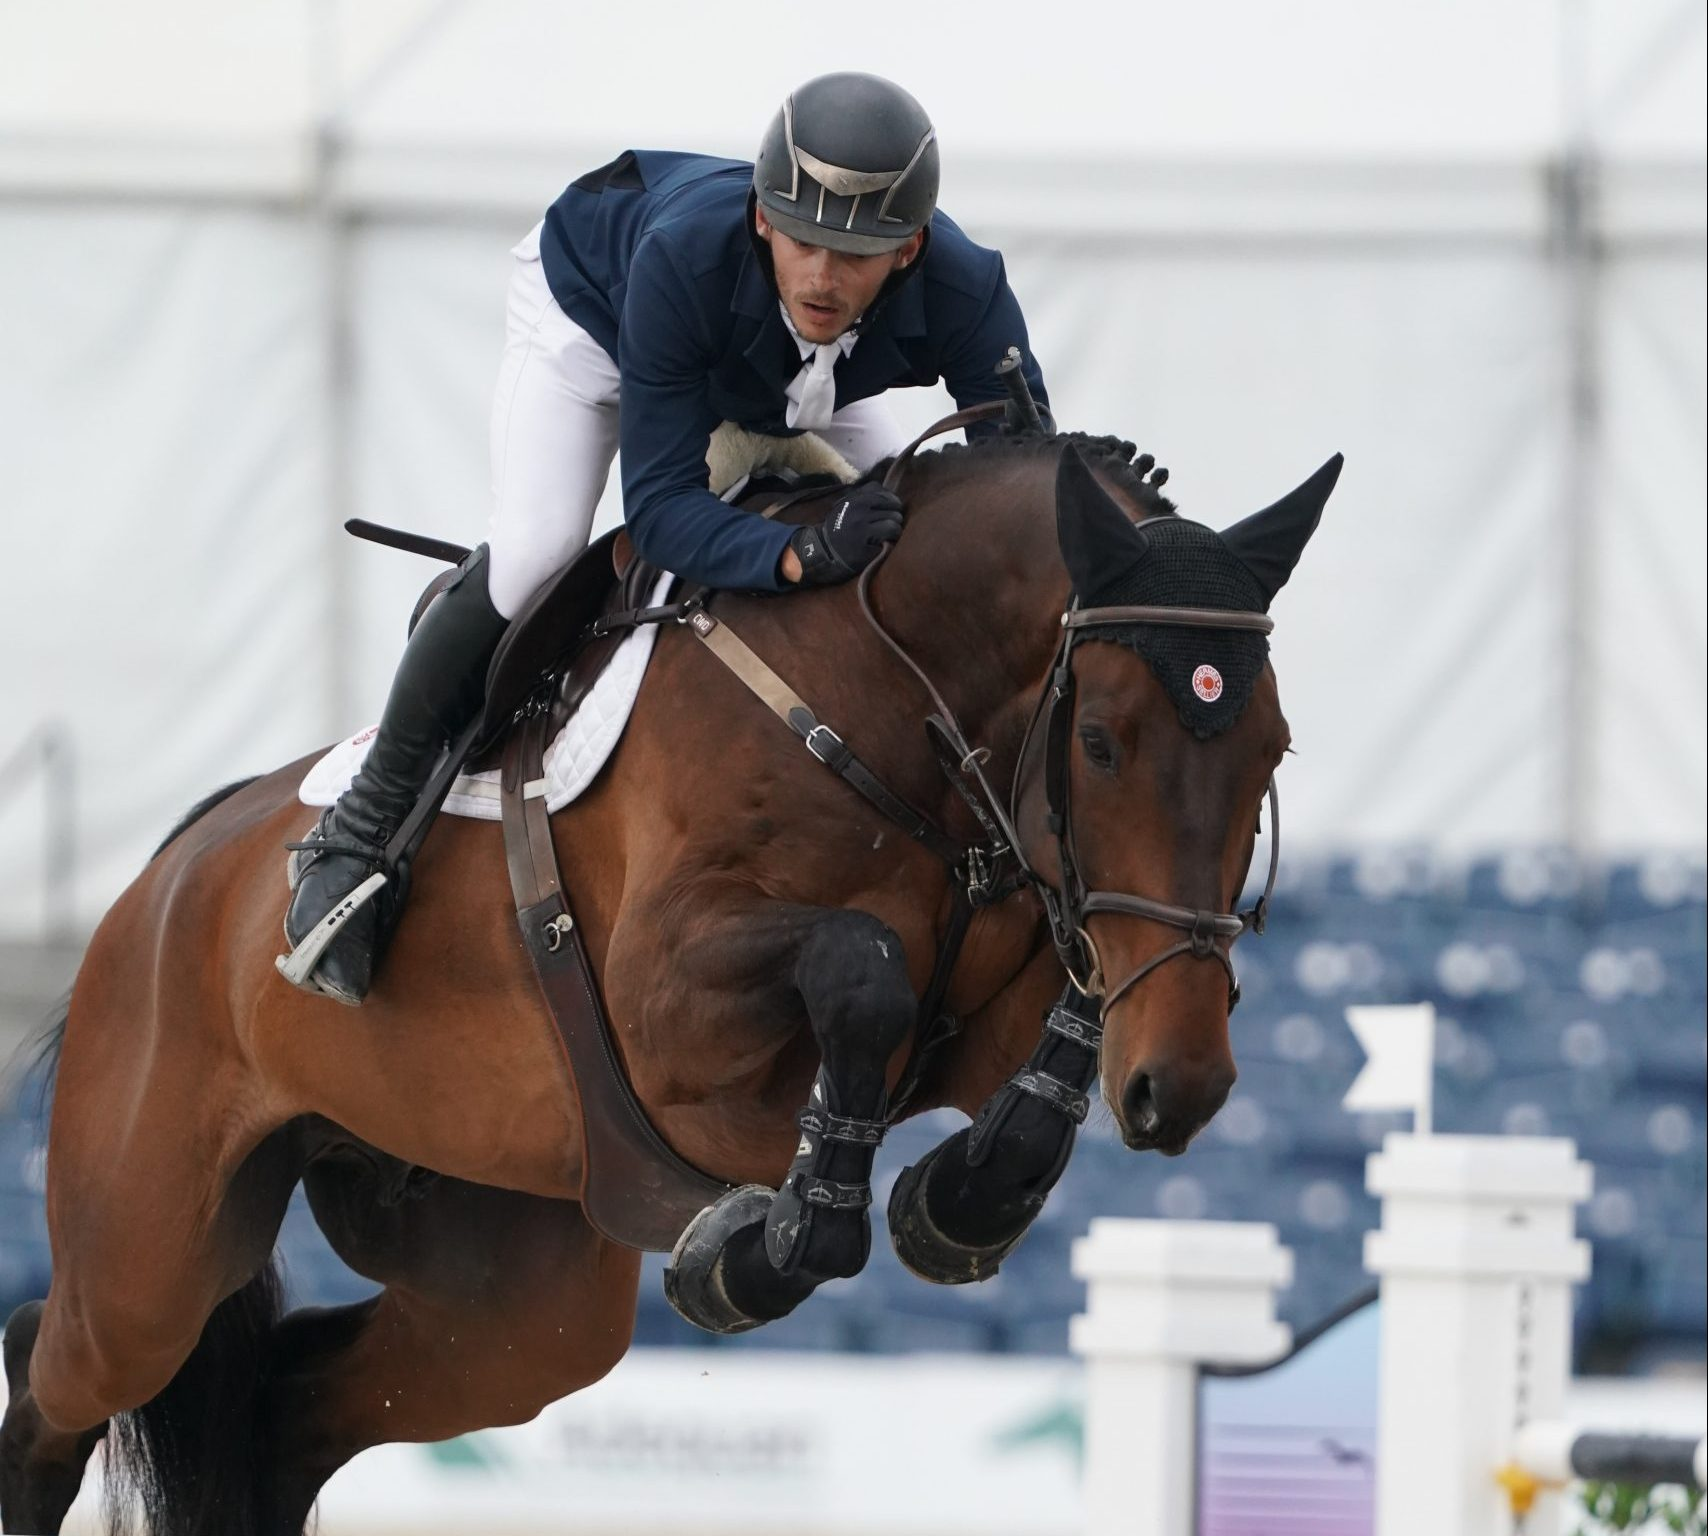 Victory for Lenzo 5 and Mark Bluman at the CSI5* HITS